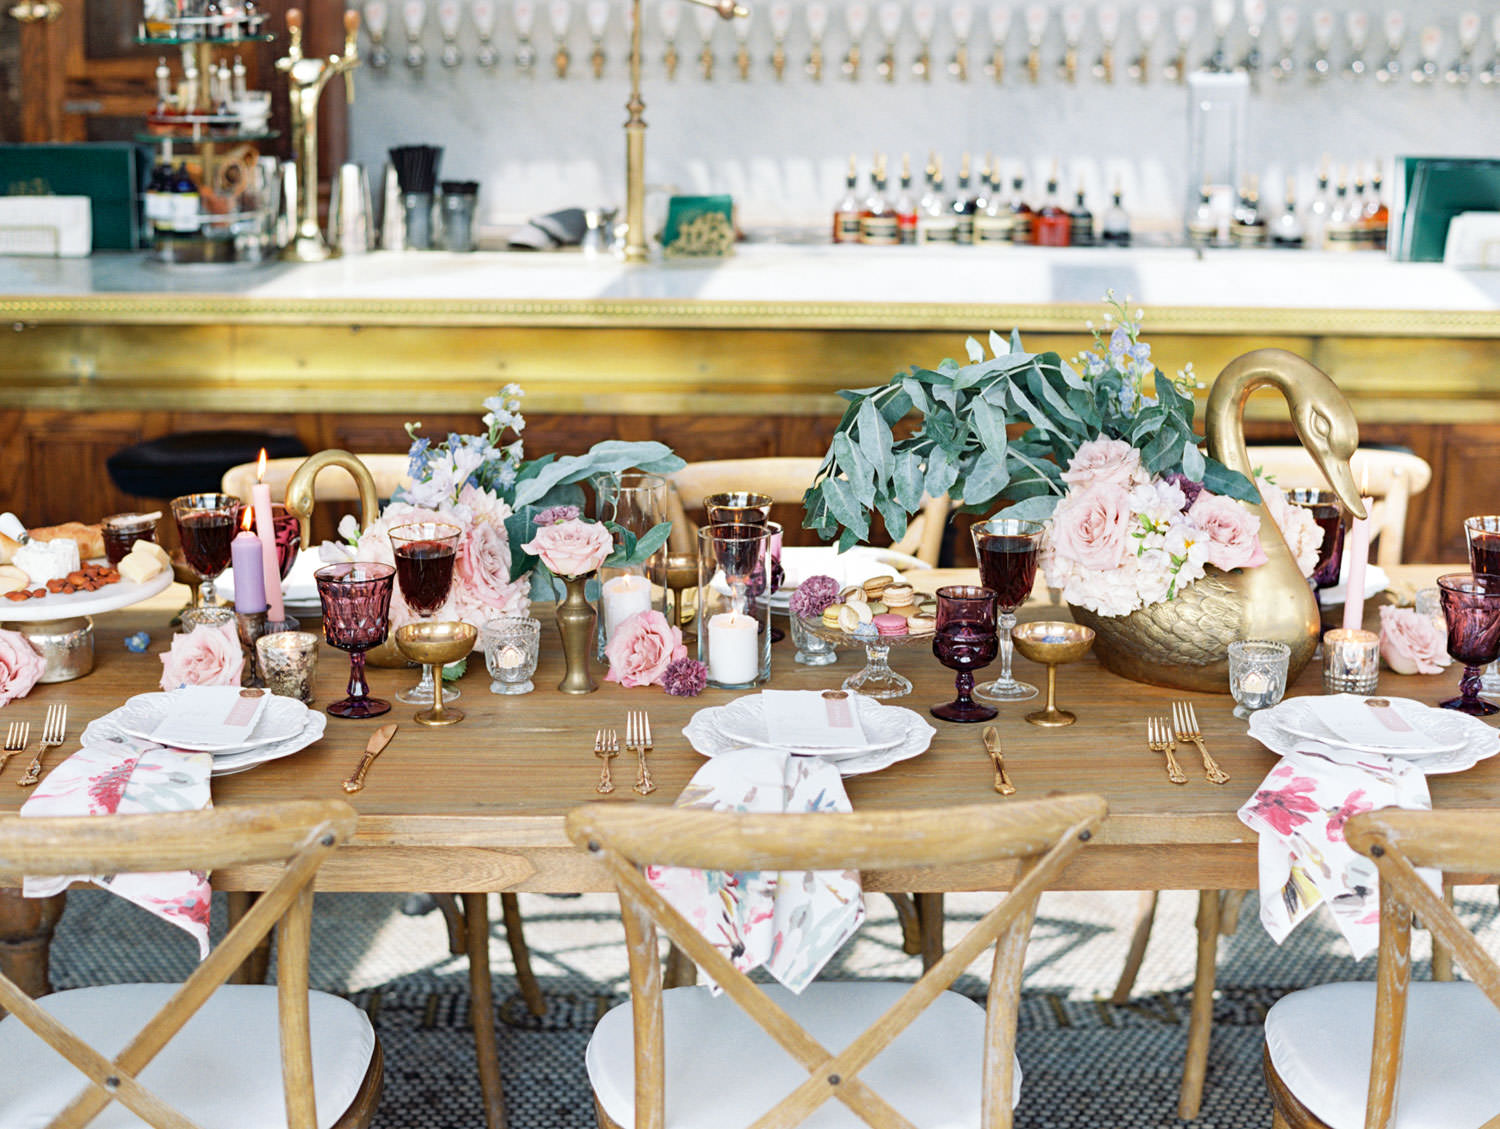 Deep purple water glass, gold coupe, crystal wine glass paired with gold flatware. Golden geese vases with ivory and blush flowers. Floral printed cotton napkins on ivory chargers with ivory menus adorned with wax seal and mauve place card. Wooden farm table with wooden crossback chairs and white cushions. Cavin Elizabeth Photography.